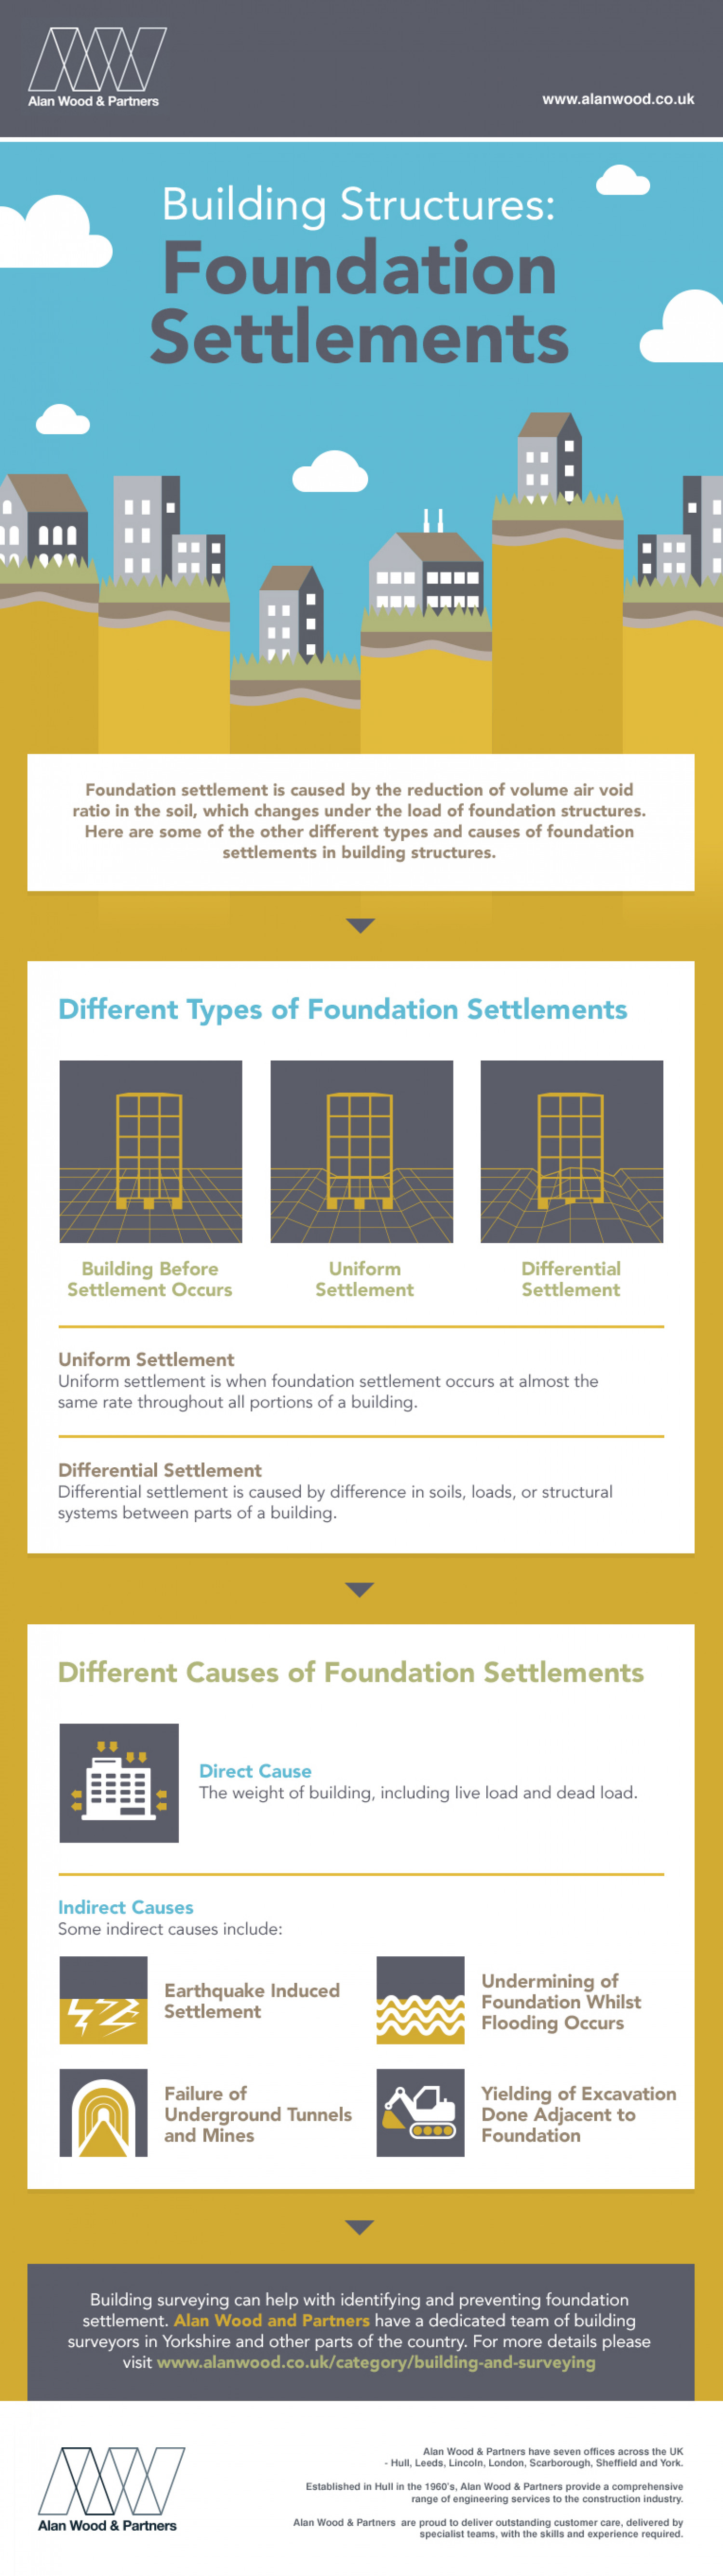 Building Structures: Foundation Settlements Infographic